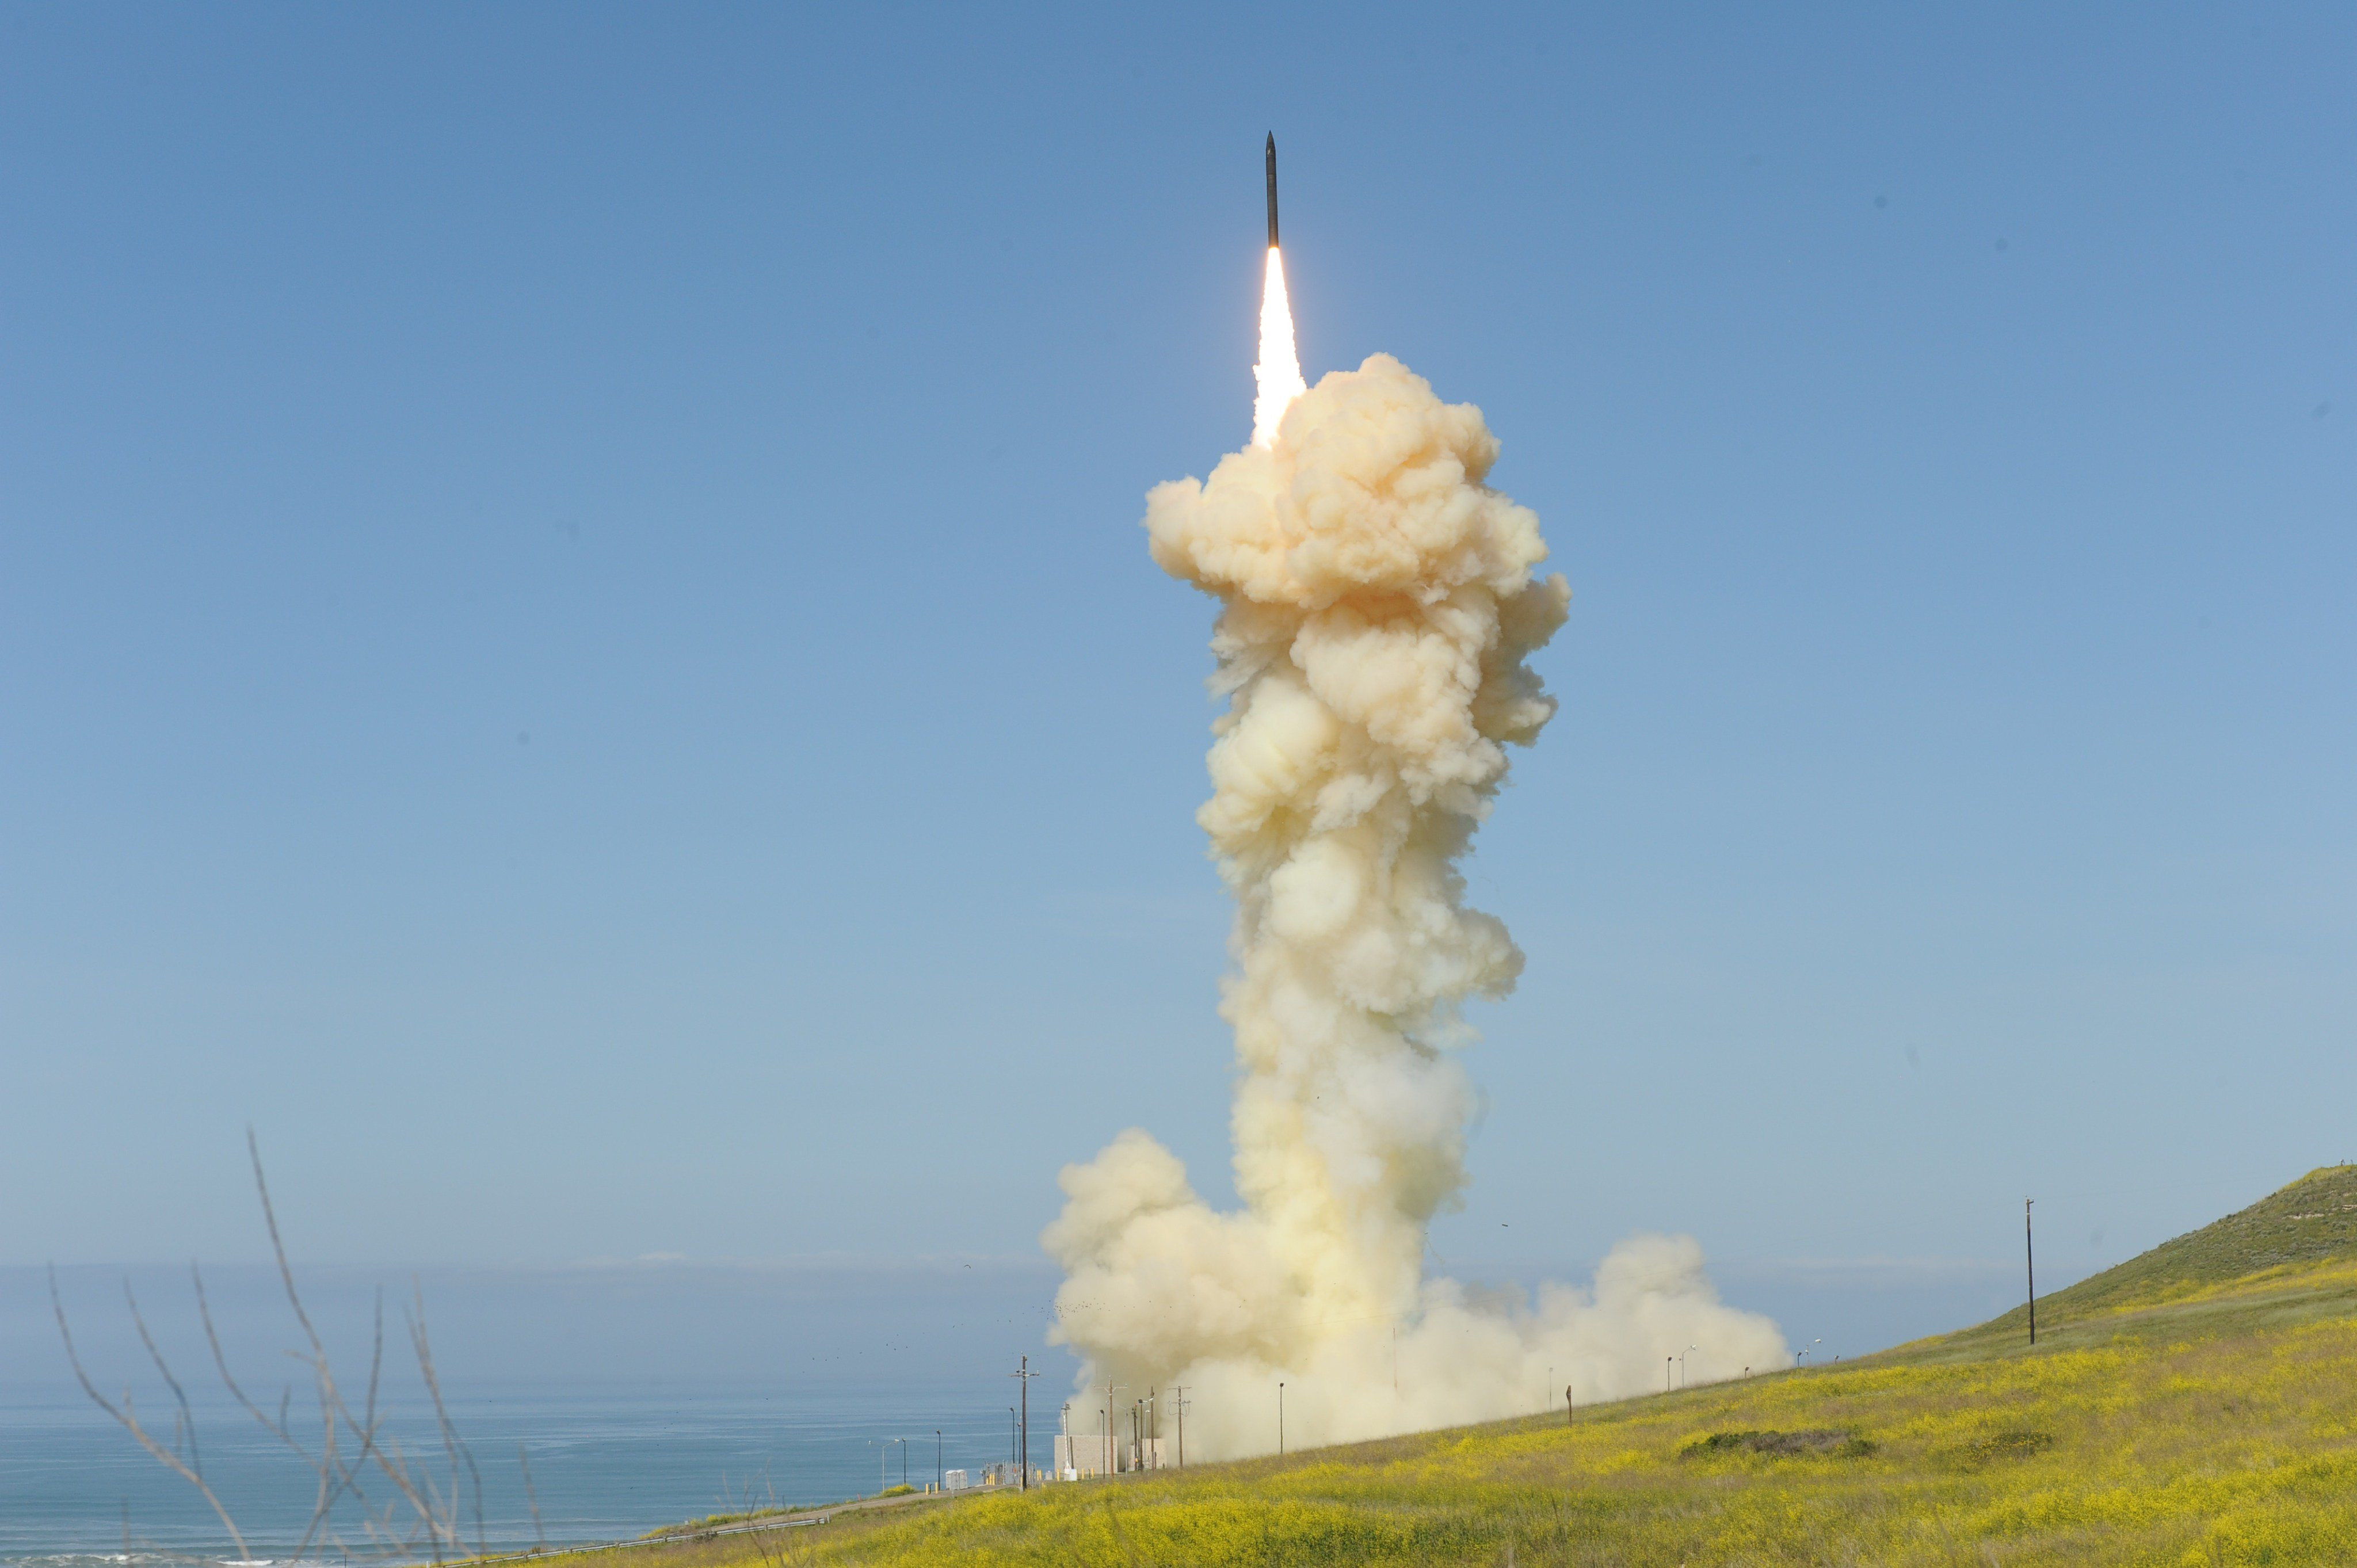 The 'lead' Ground-based Interceptor is launched from Vandenberg Air Force Base, Calif., March 25, 2019, in the first-ever salvo engagement test of a threat-representative ICBM target. The two GBIs successfully intercepted a target launched from the Ronald Reagan Ballistic Missile Defense Test Site on Kwajalein Atoll.